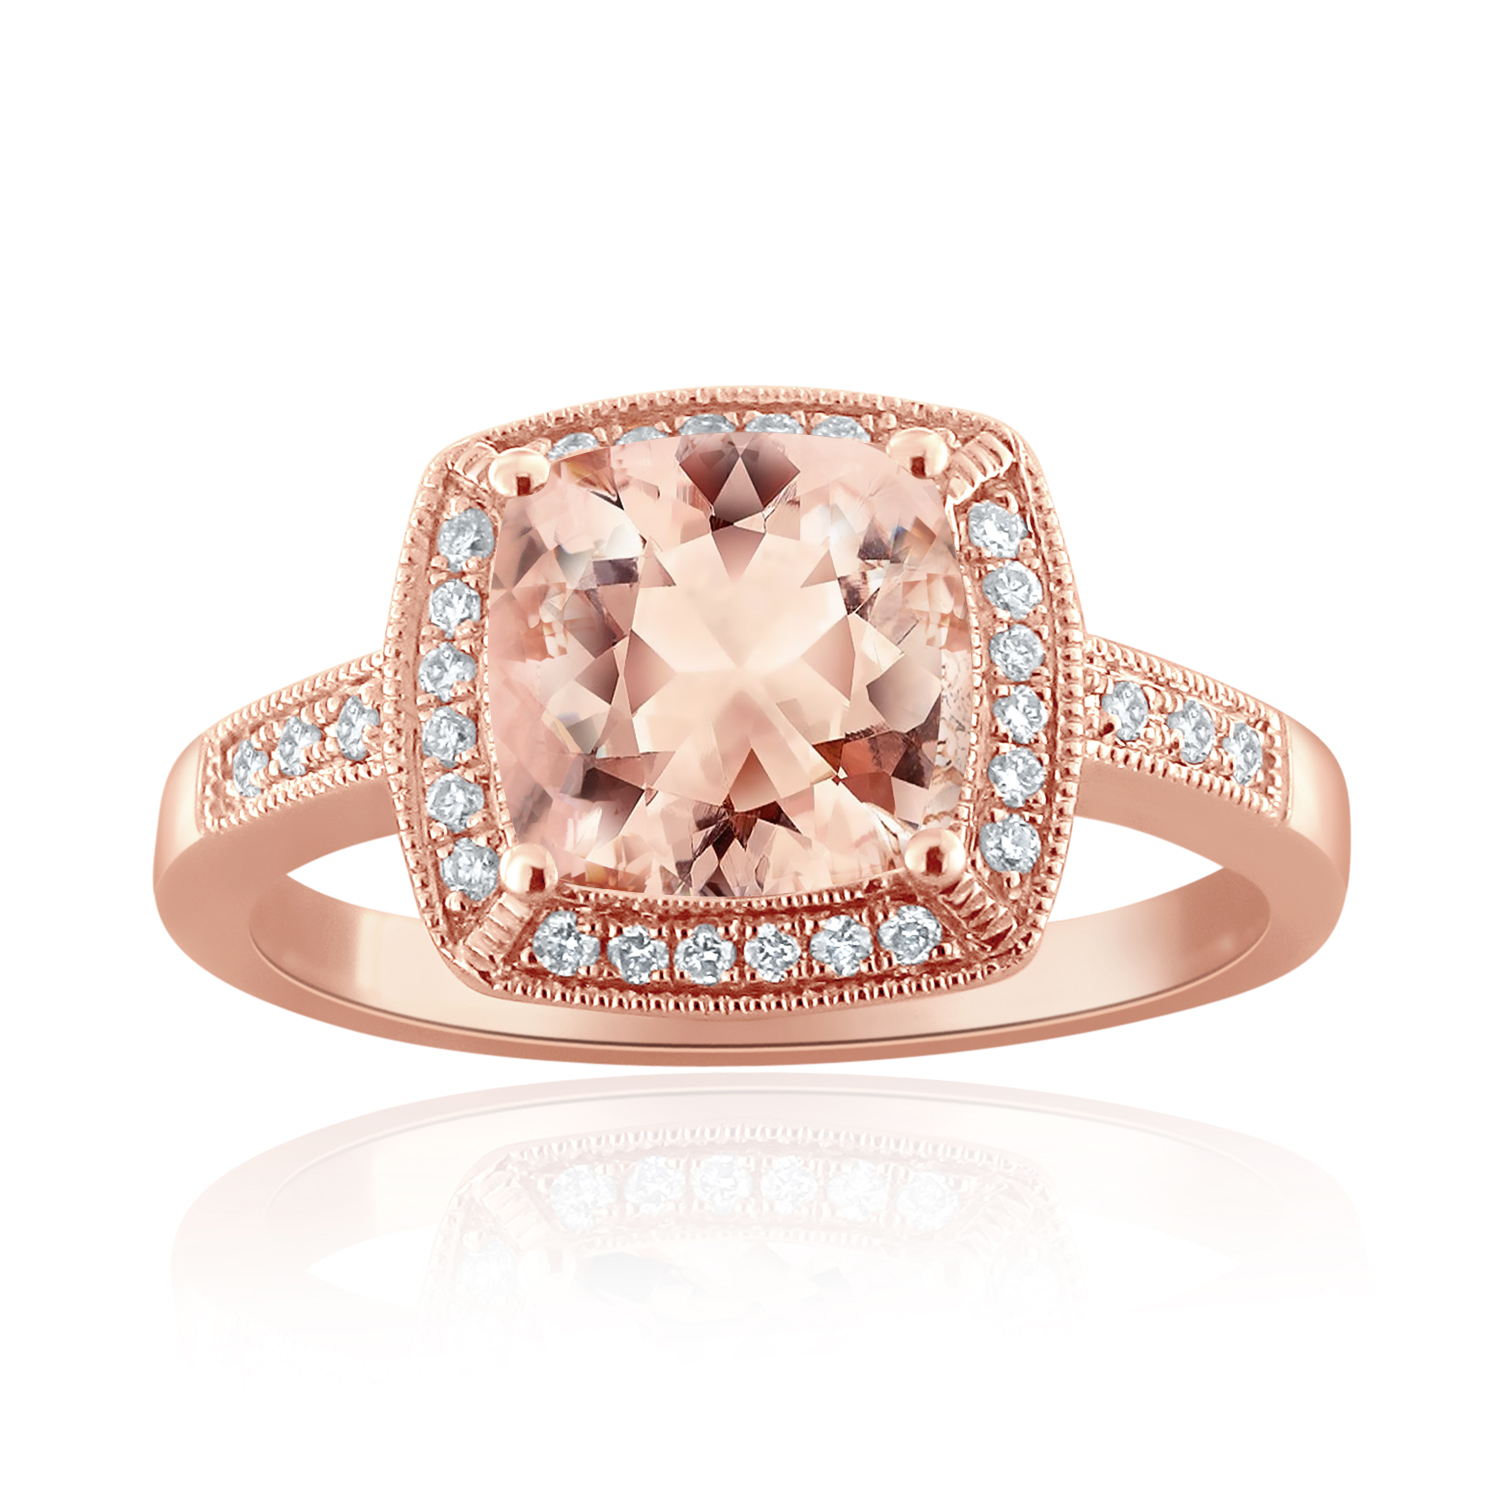 MADELINE Halo Morganite Engagement Ring In 14K Rose Gold With 1.00 Carat Cushion Stone